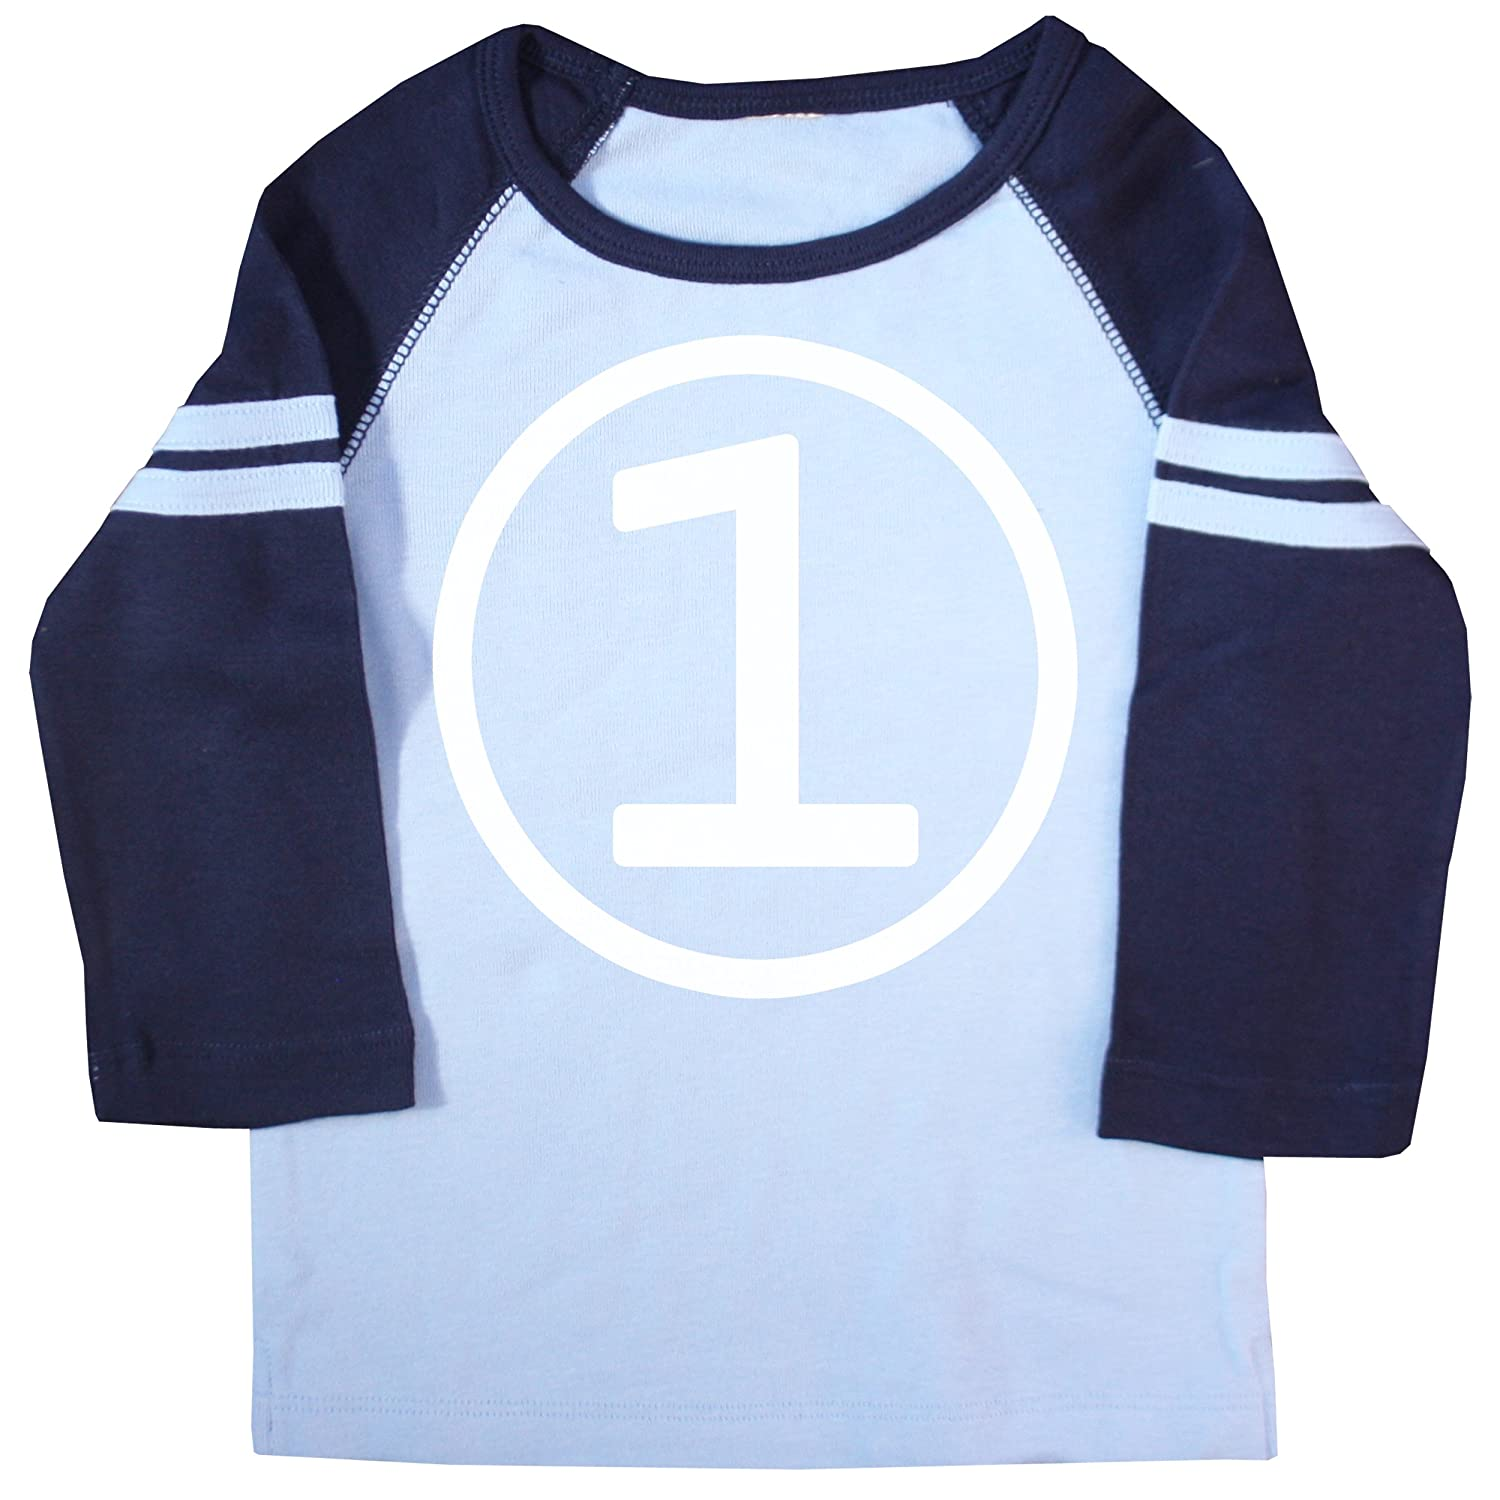 Size 2T First Birthday 3//4 Sleeve Baby Boy Light Blue and Navy American Apparel T Shirt